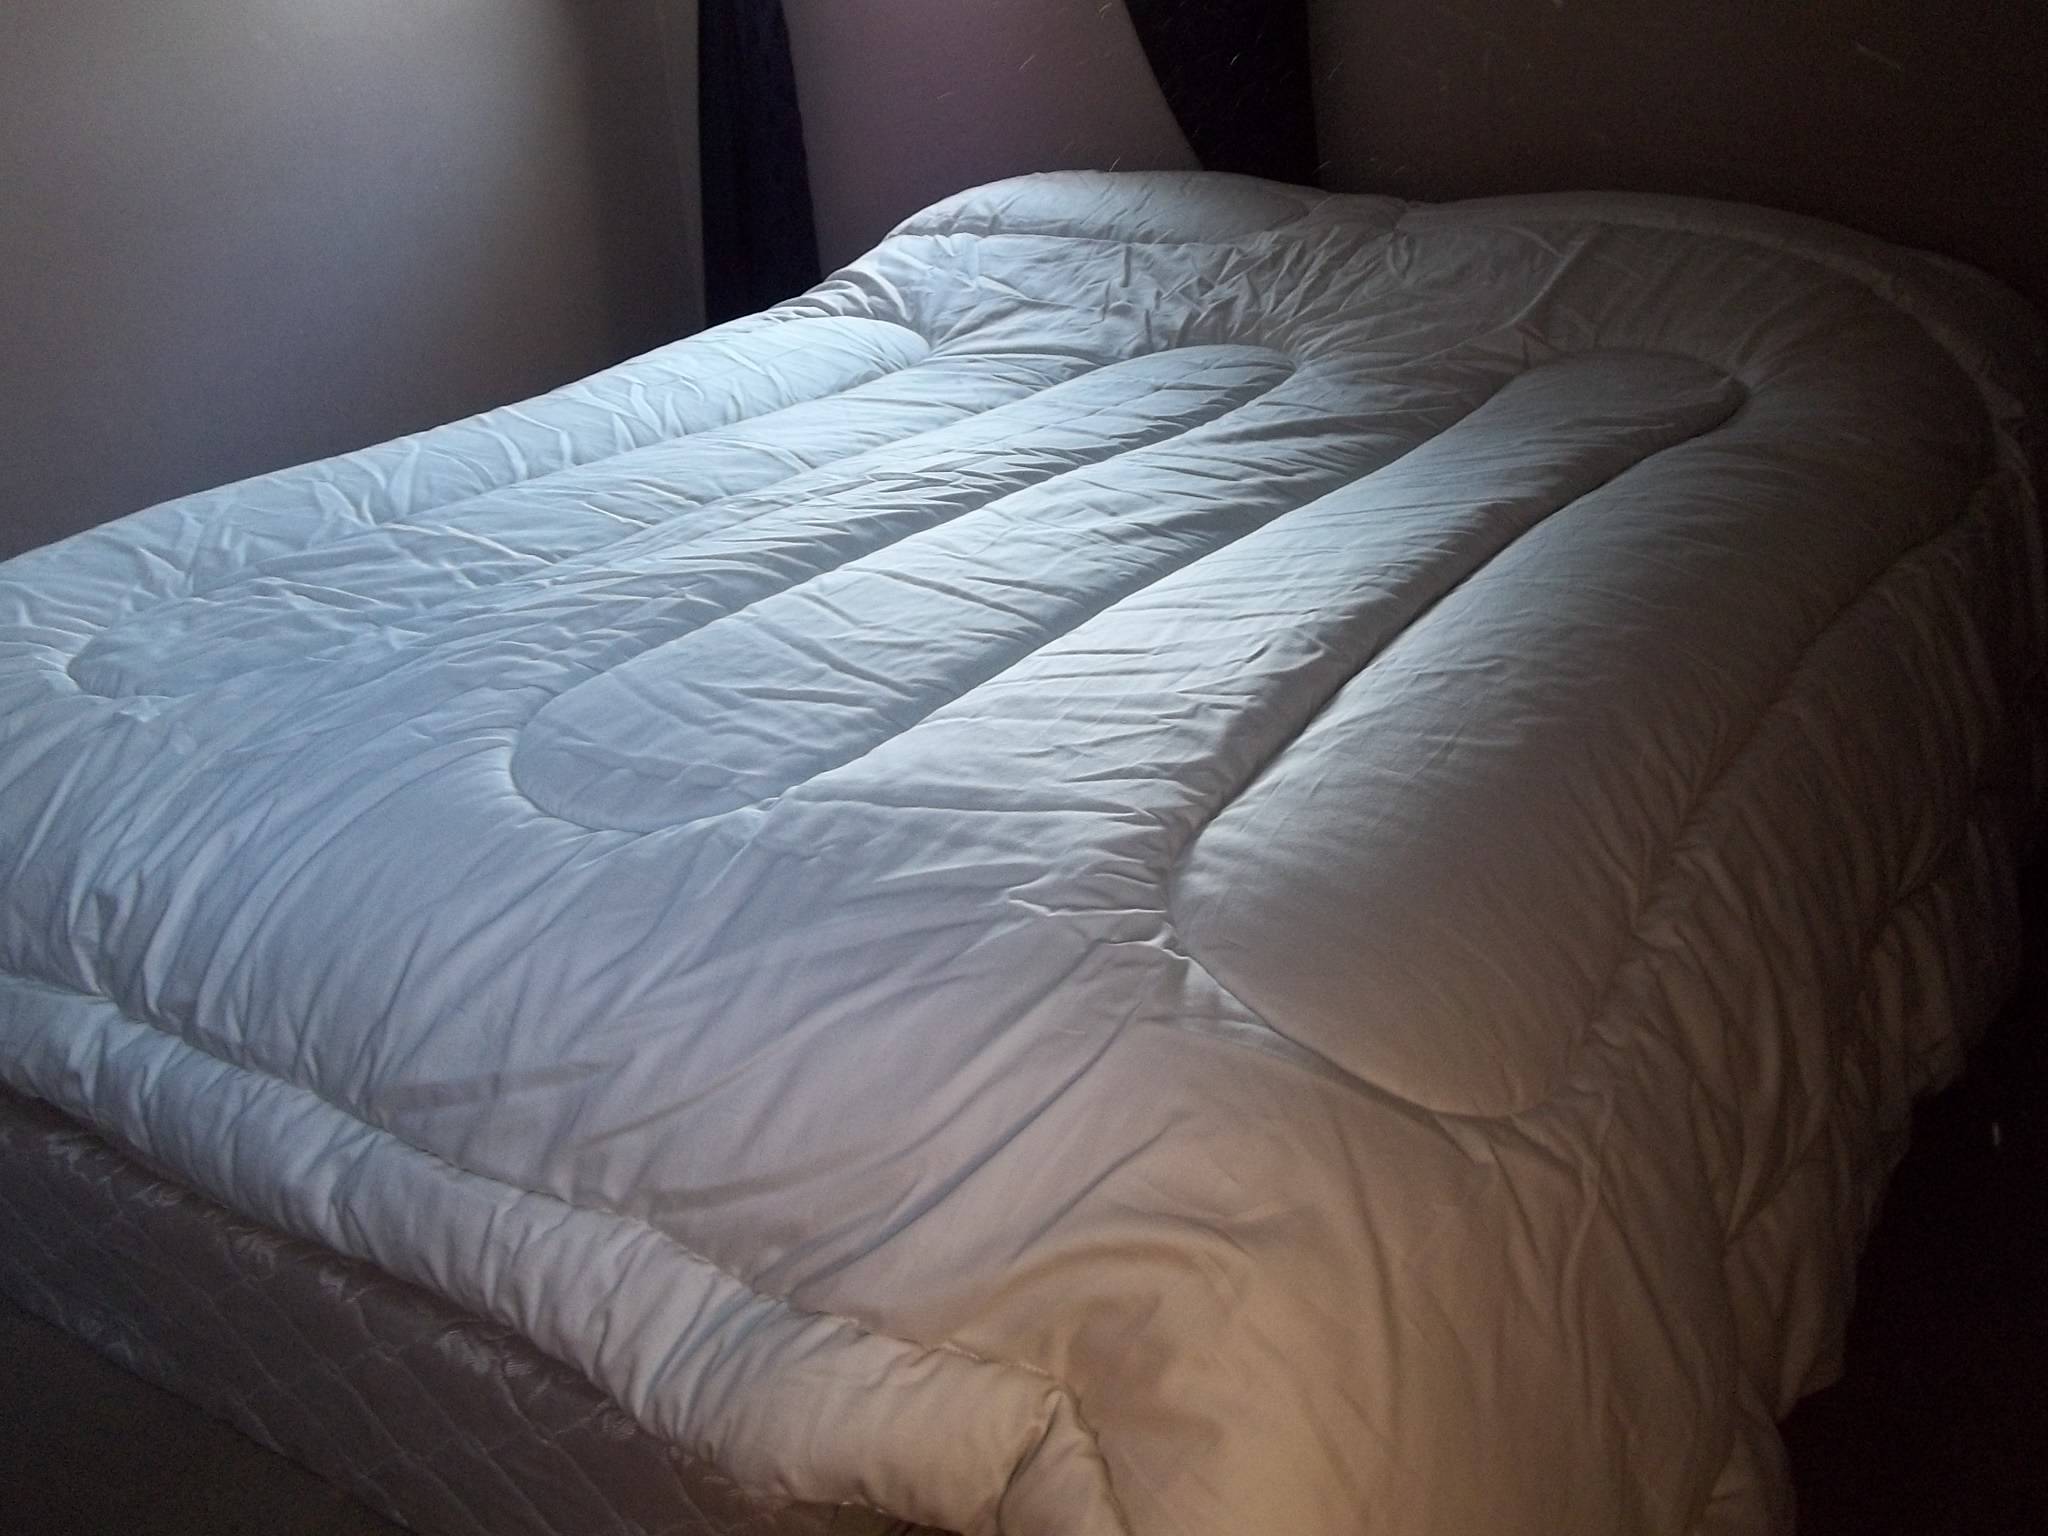 chemical allergy available count free cotton in slebe merino cover adult comforter yhst ivory organic duvet thread only otc wool